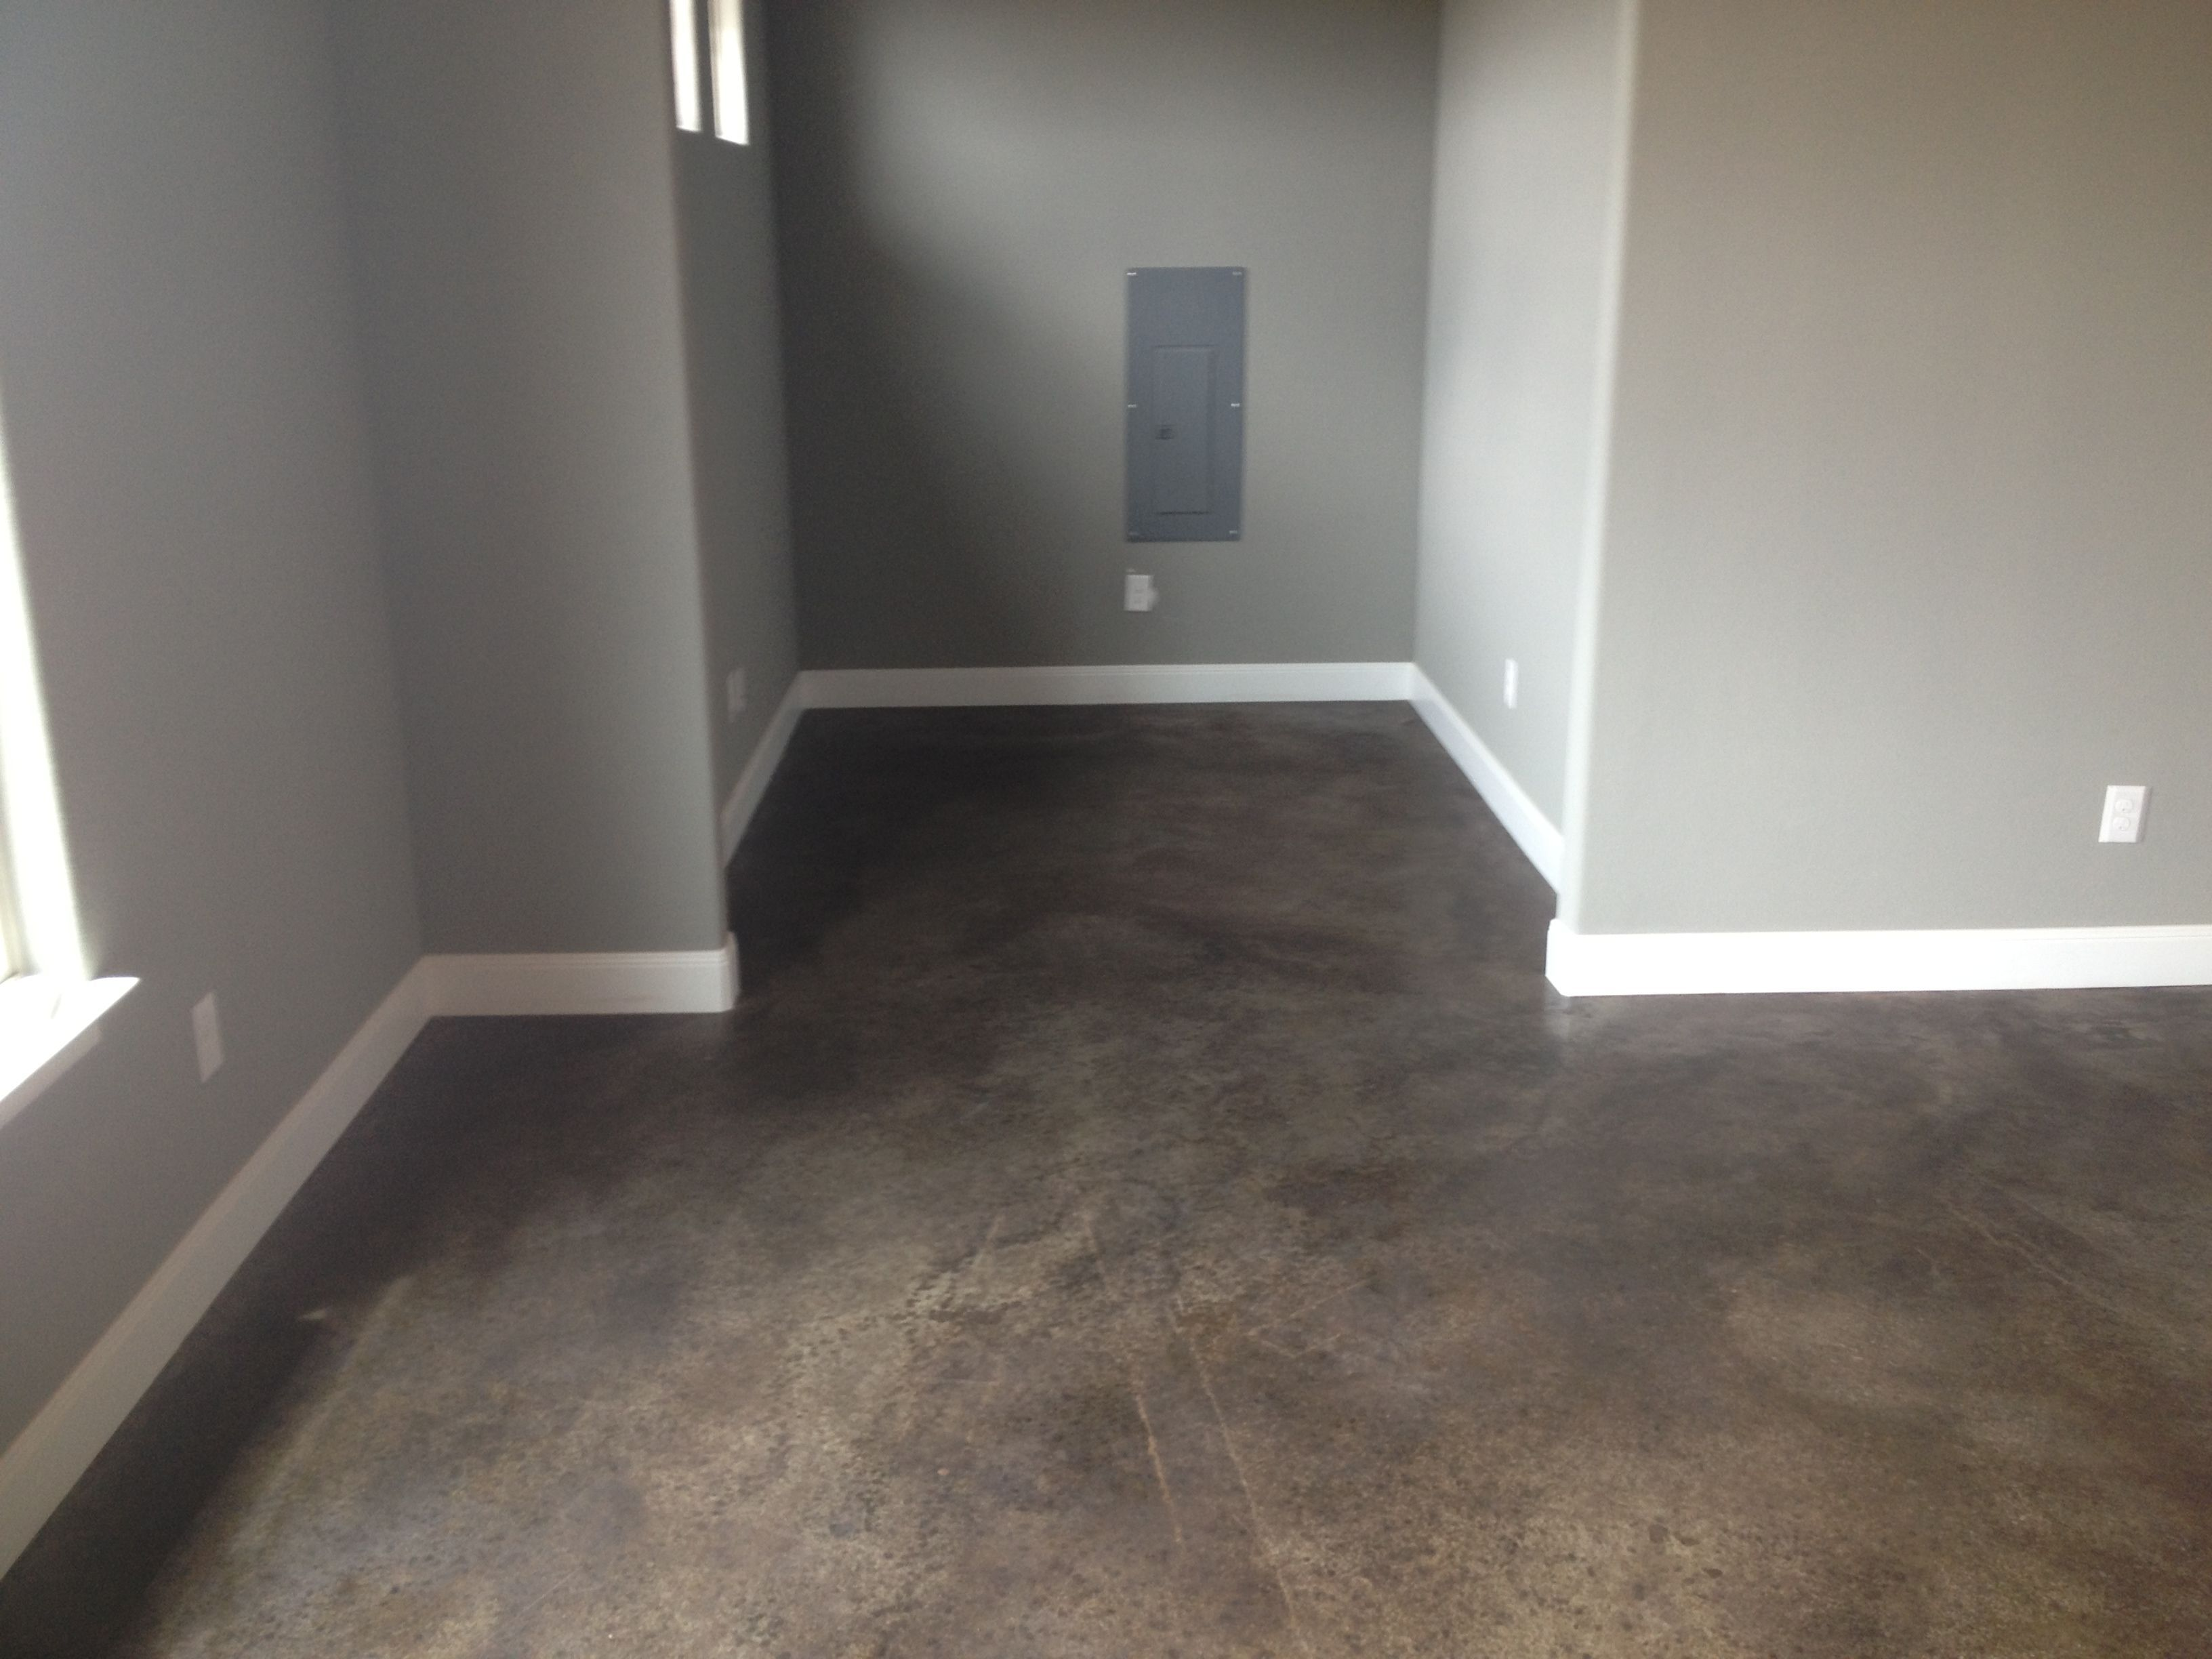 Stained Concrete Floors Concrete Stained Floors House Flooring Concrete Floors